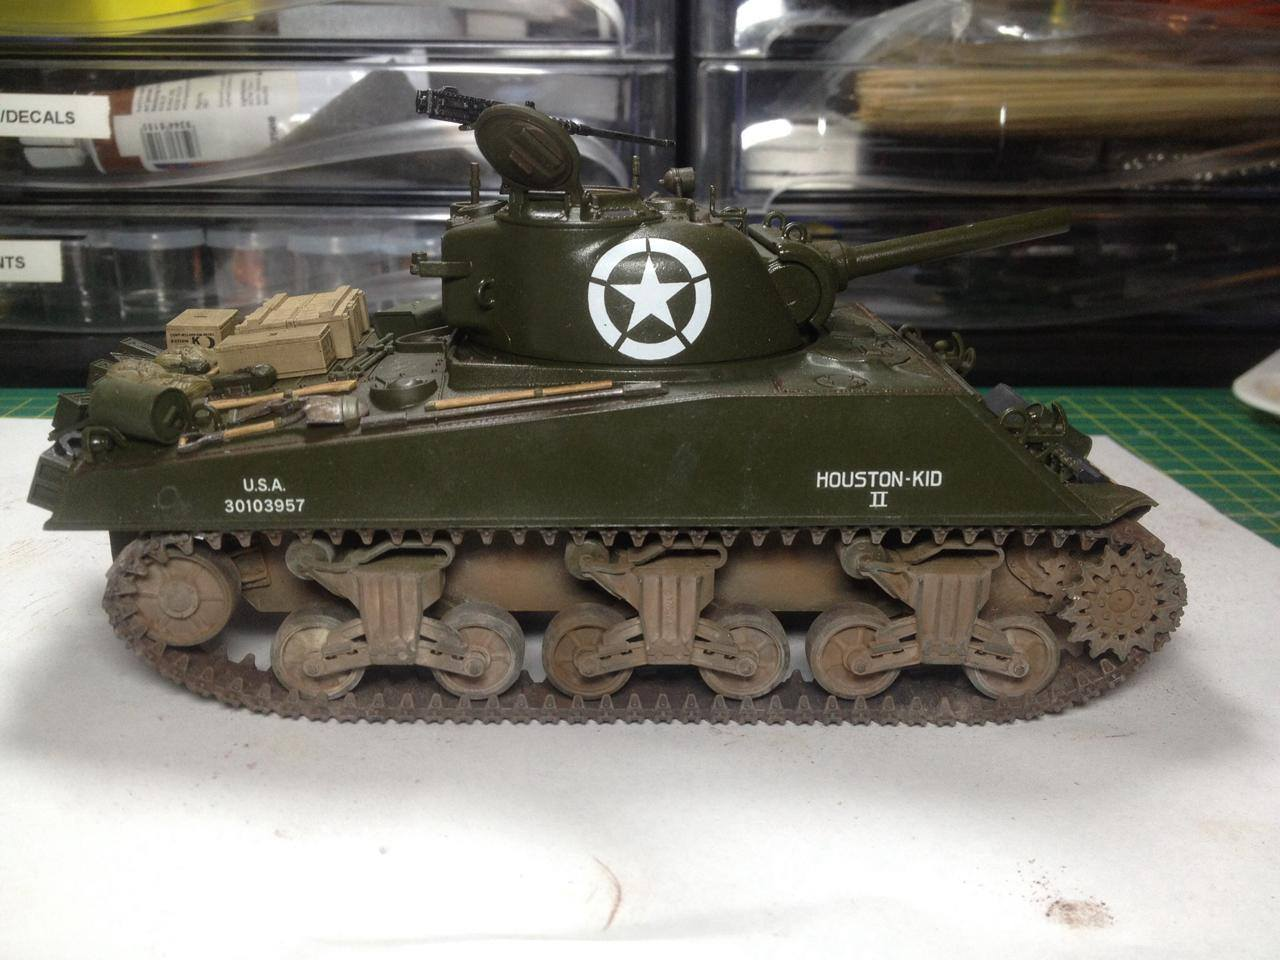 Dave's Model Workshop: Reader's Build: 1/35 Tamiya Sherman